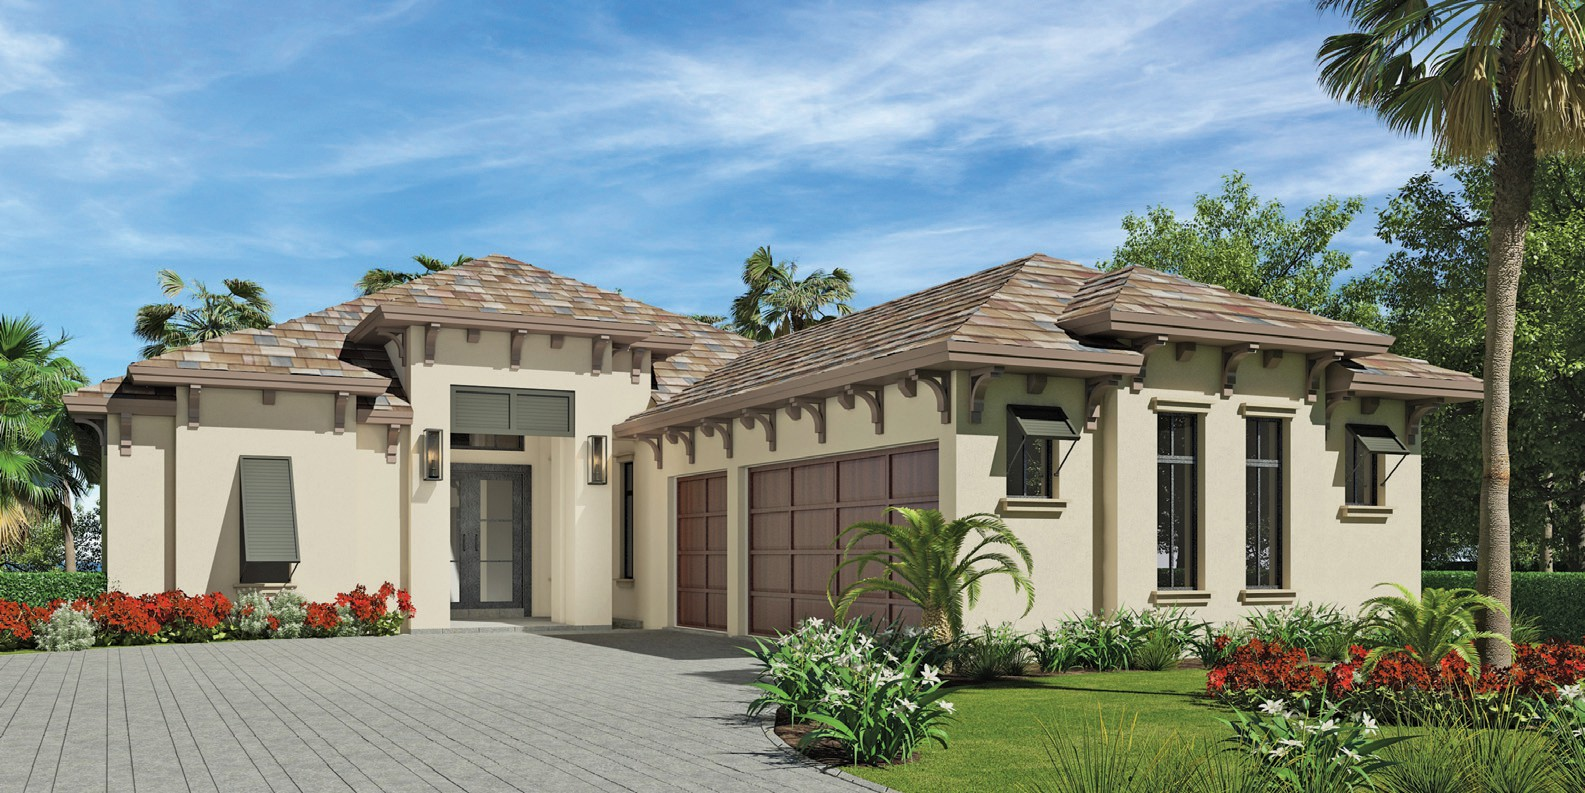 This weekend: Talis Park's April Luxury Home Tour highlights new-fashioned  lifestyle, award-winning homes | Naples Florida Weekly